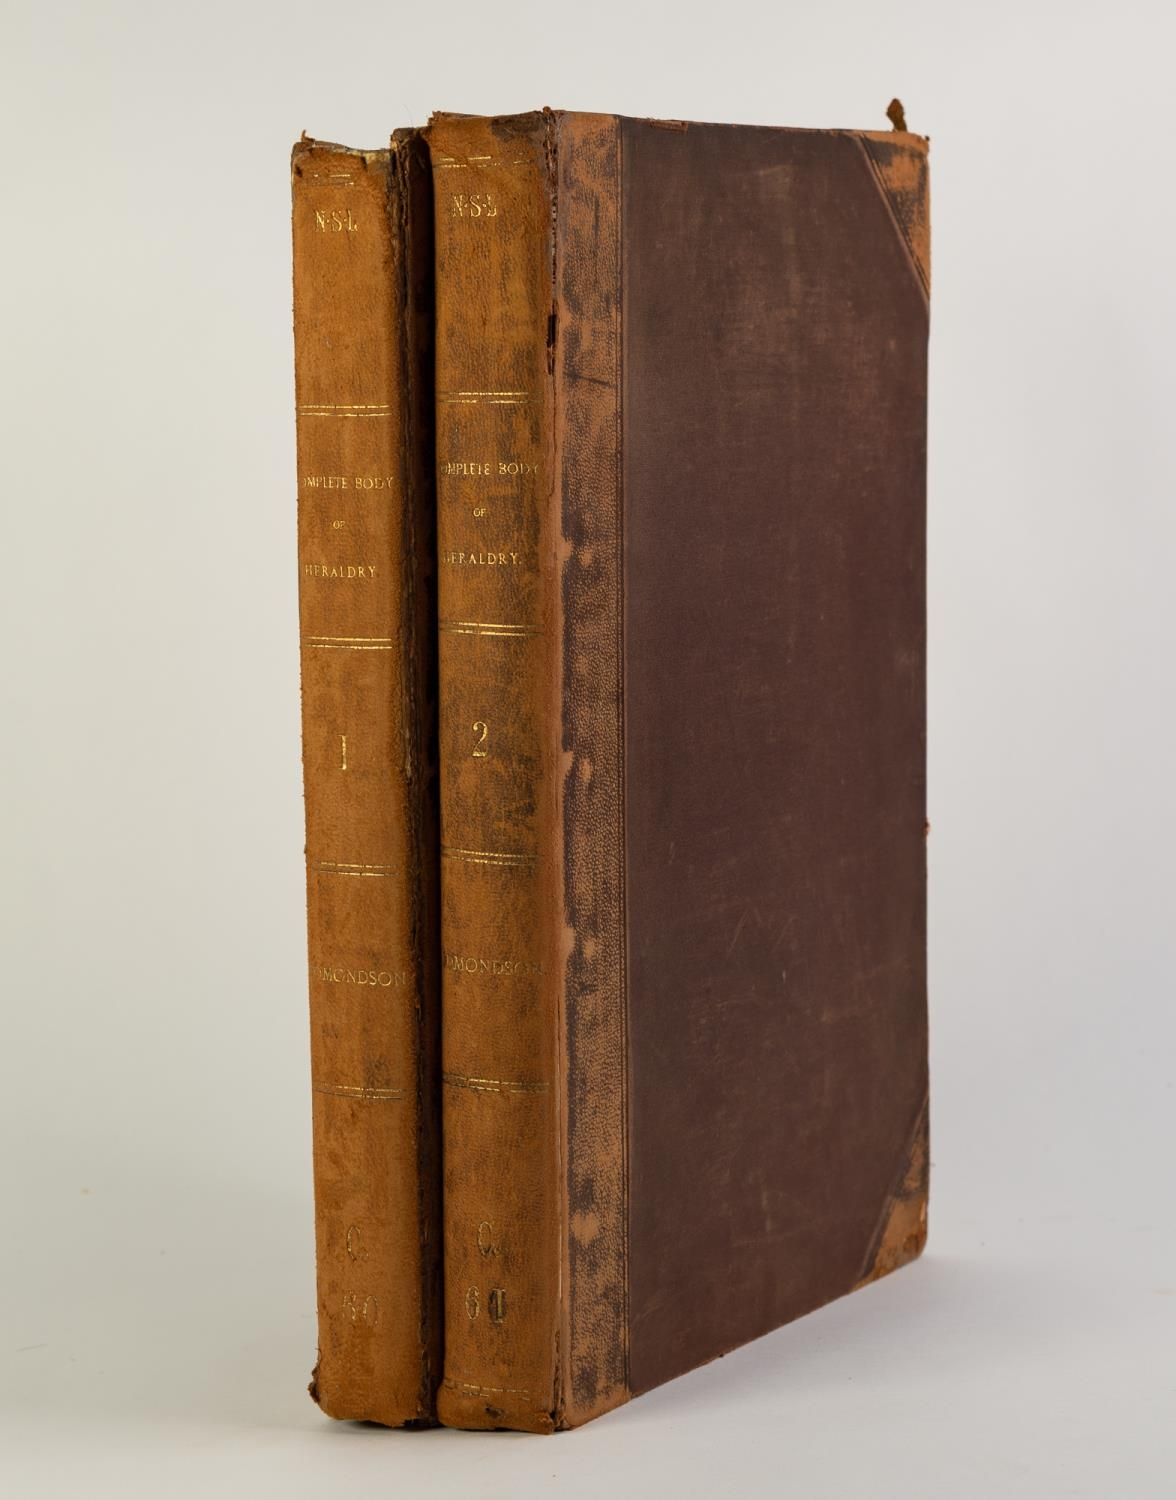 Joseph Edmondson- A Complete Body of Heraldry, 2 vol, folio, London, printed for the Author by T